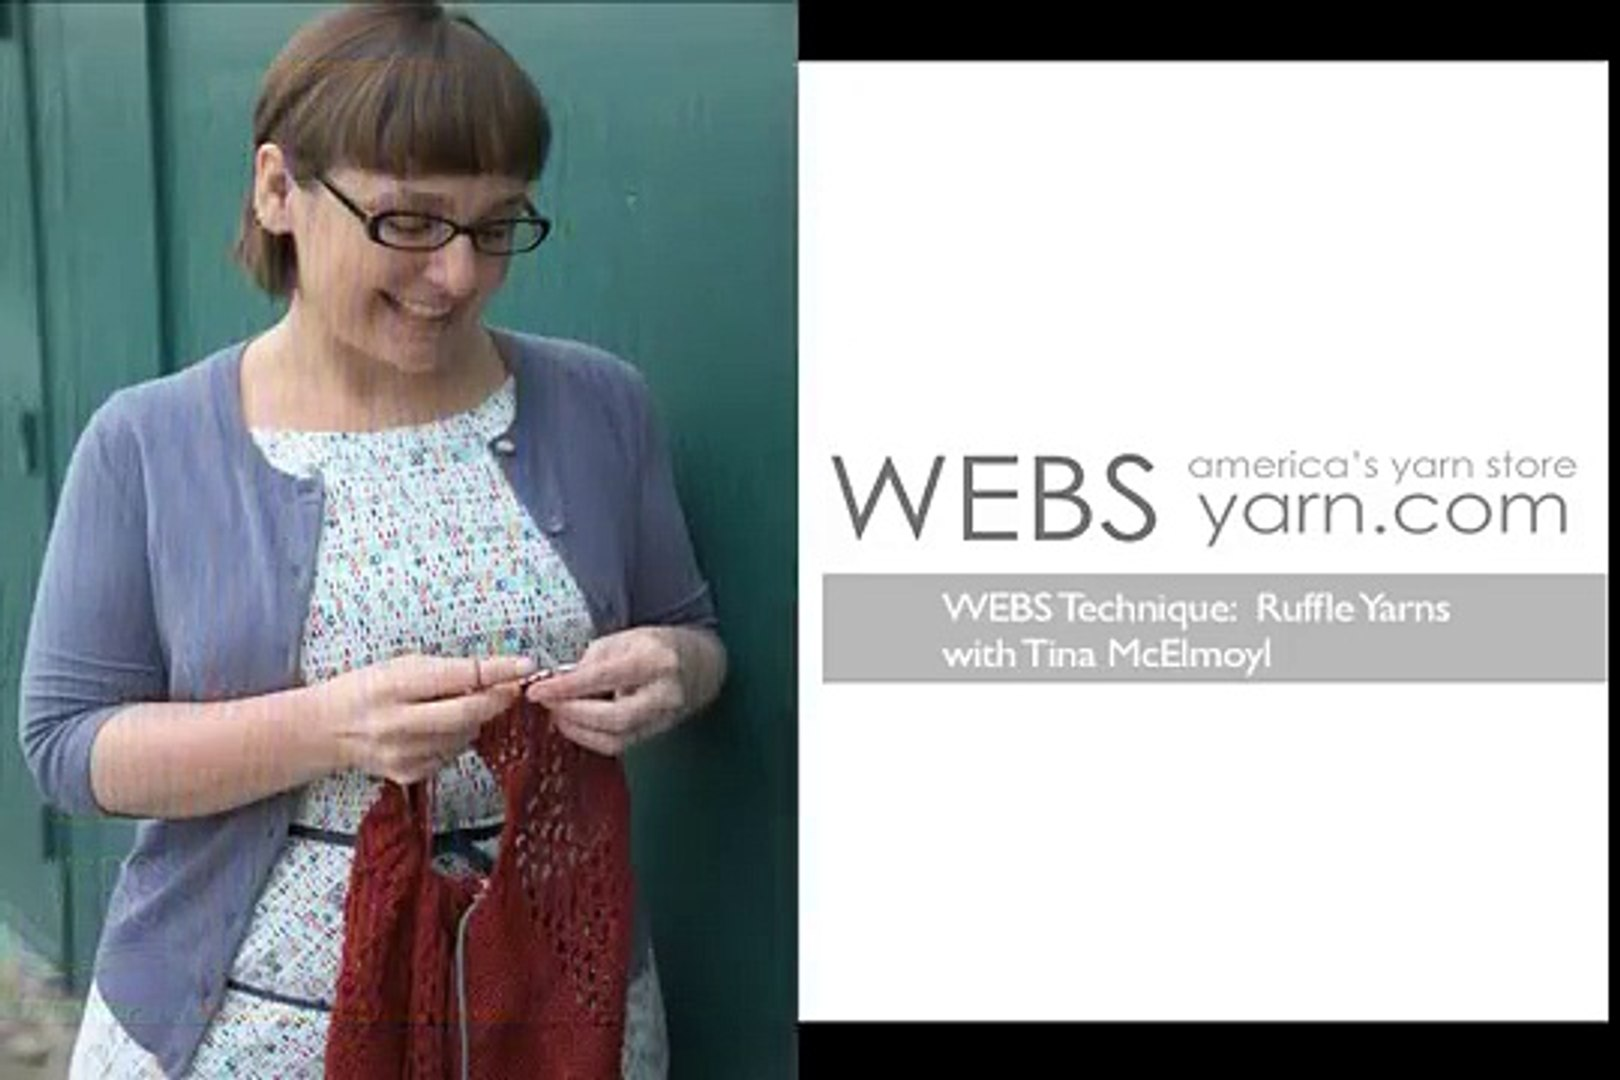 How to Knit Railroad-style Ruffle Yarns